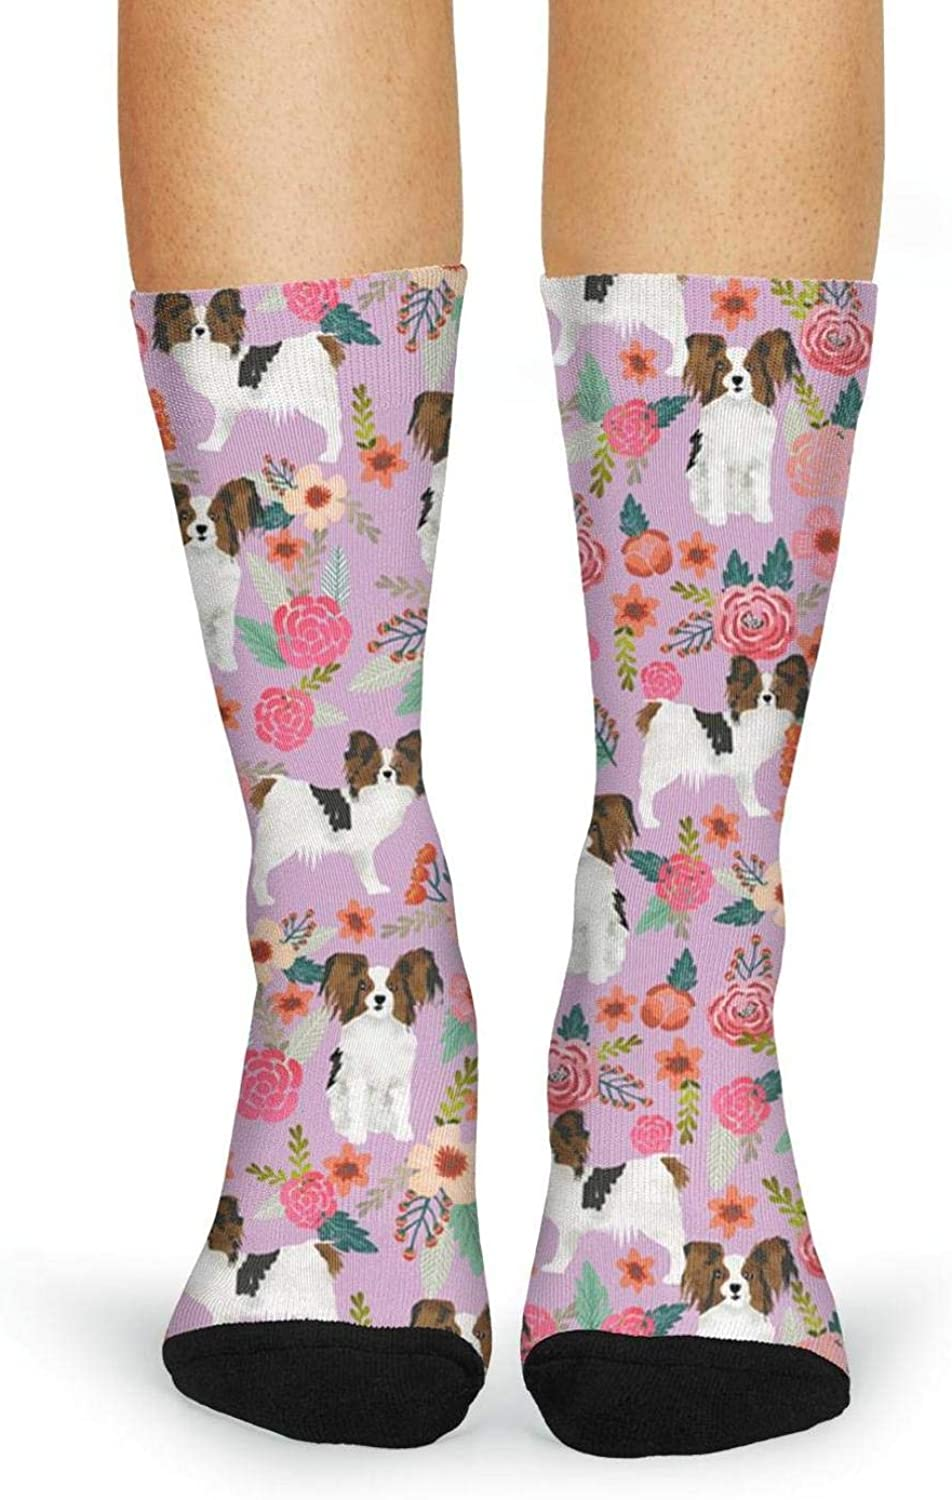 XIdan-die Womens Over-the-Calf Tube Socks Pets Papillon And Floral Cool Moisture Wicking Casual Socks